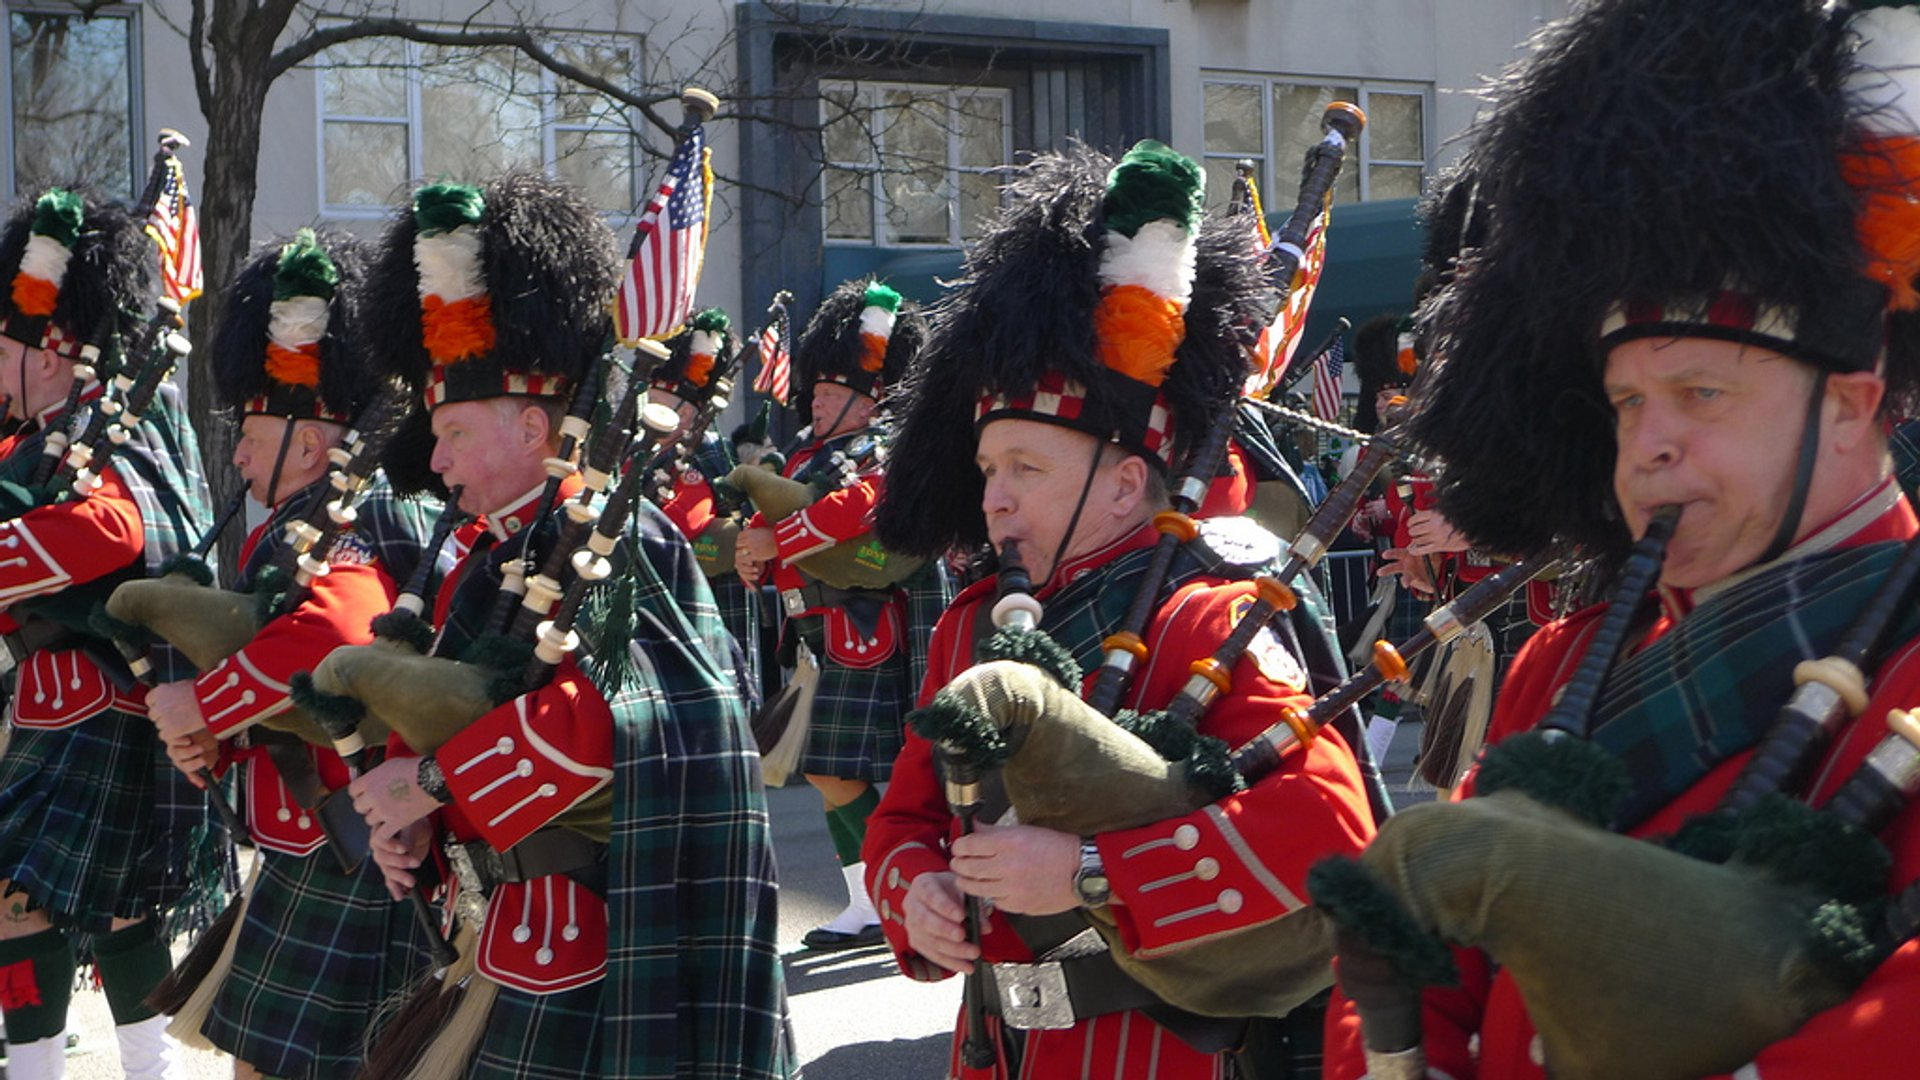 St. Patrick's Day Parade in New York - Best Season 2020